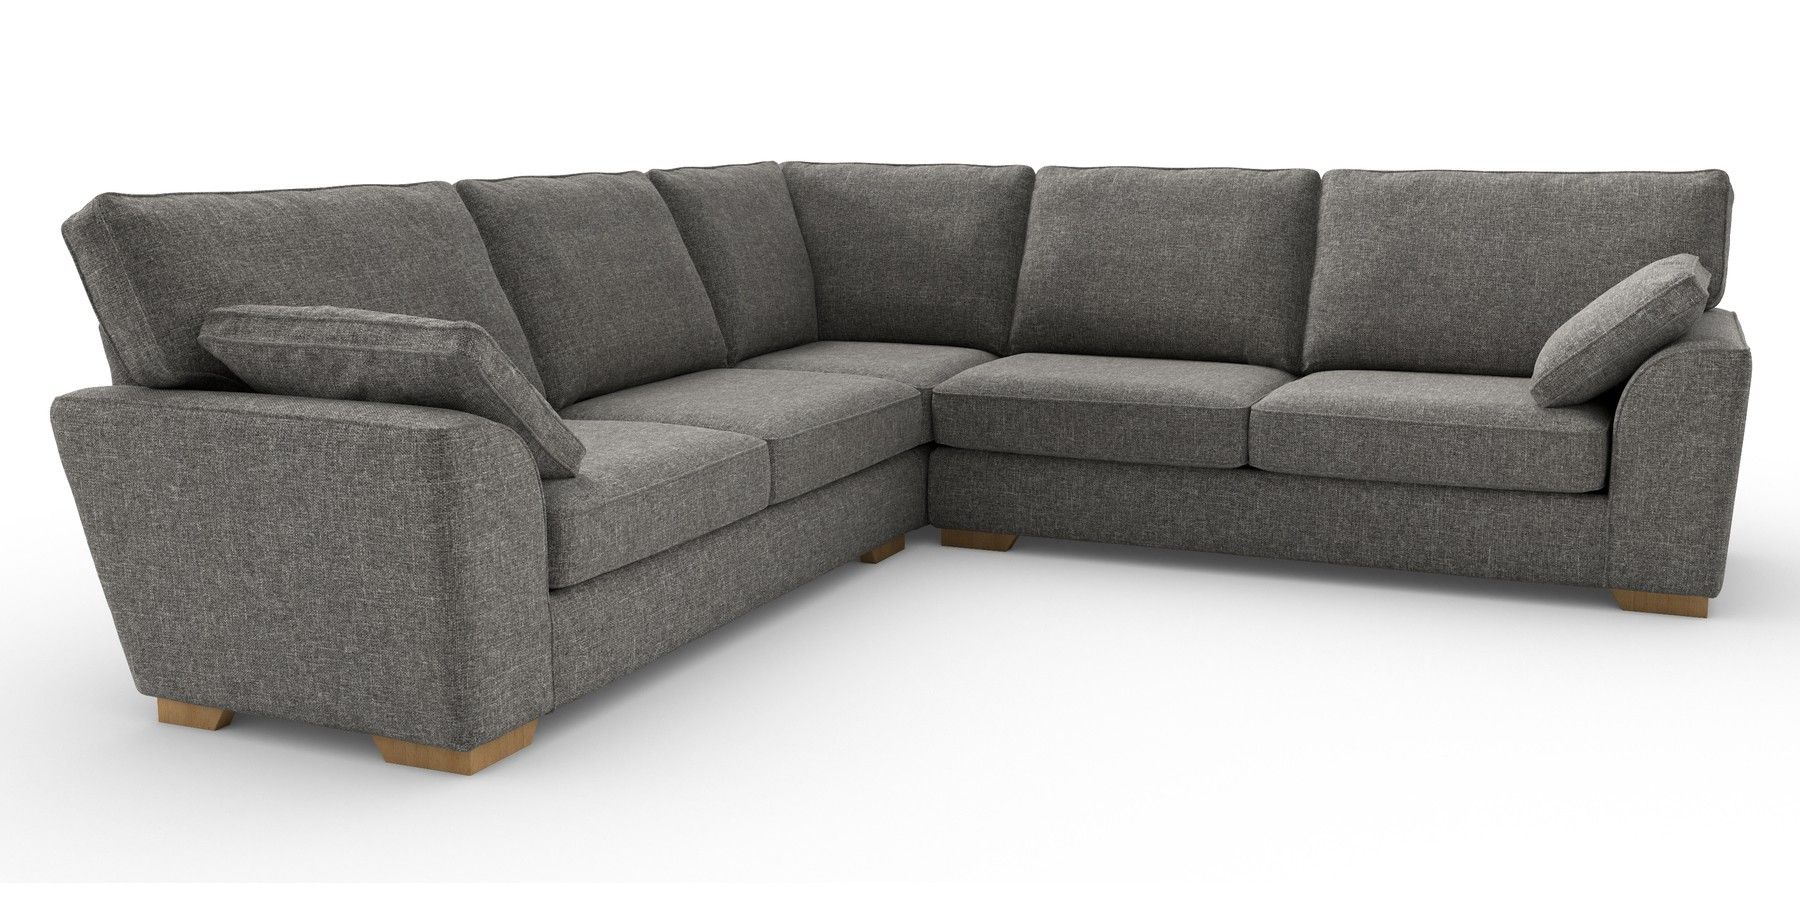 Stamford Tailored Comfort With Images Corner Sofa Grey Corner Sofa Corner Sofa Uk